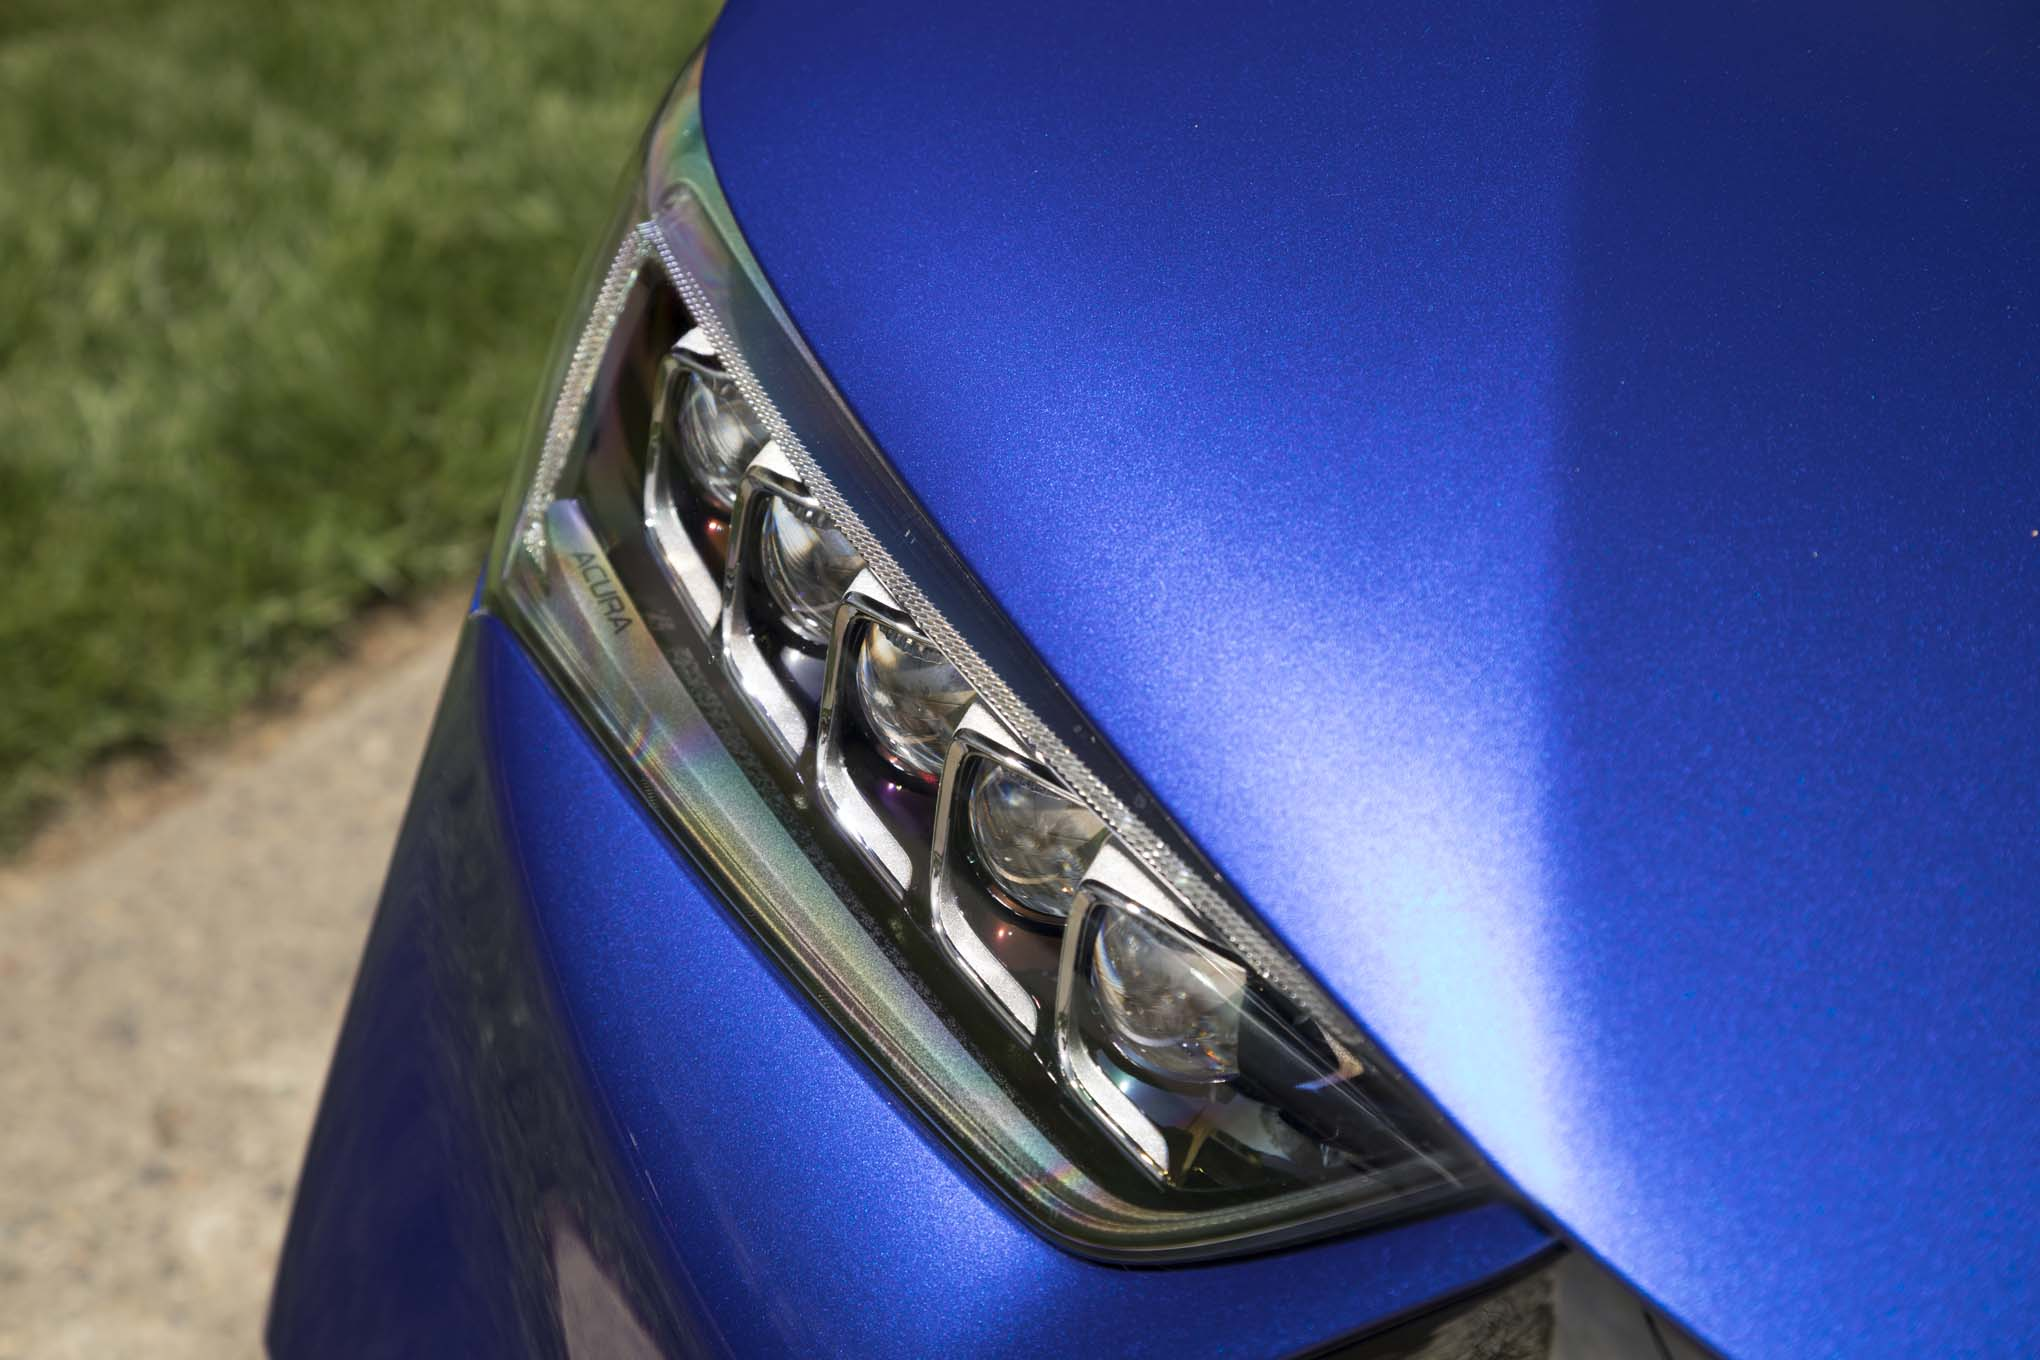 Acura TLX SHAWD ASpec First Drive Review Automobile Magazine - 2018 acura tl headlights